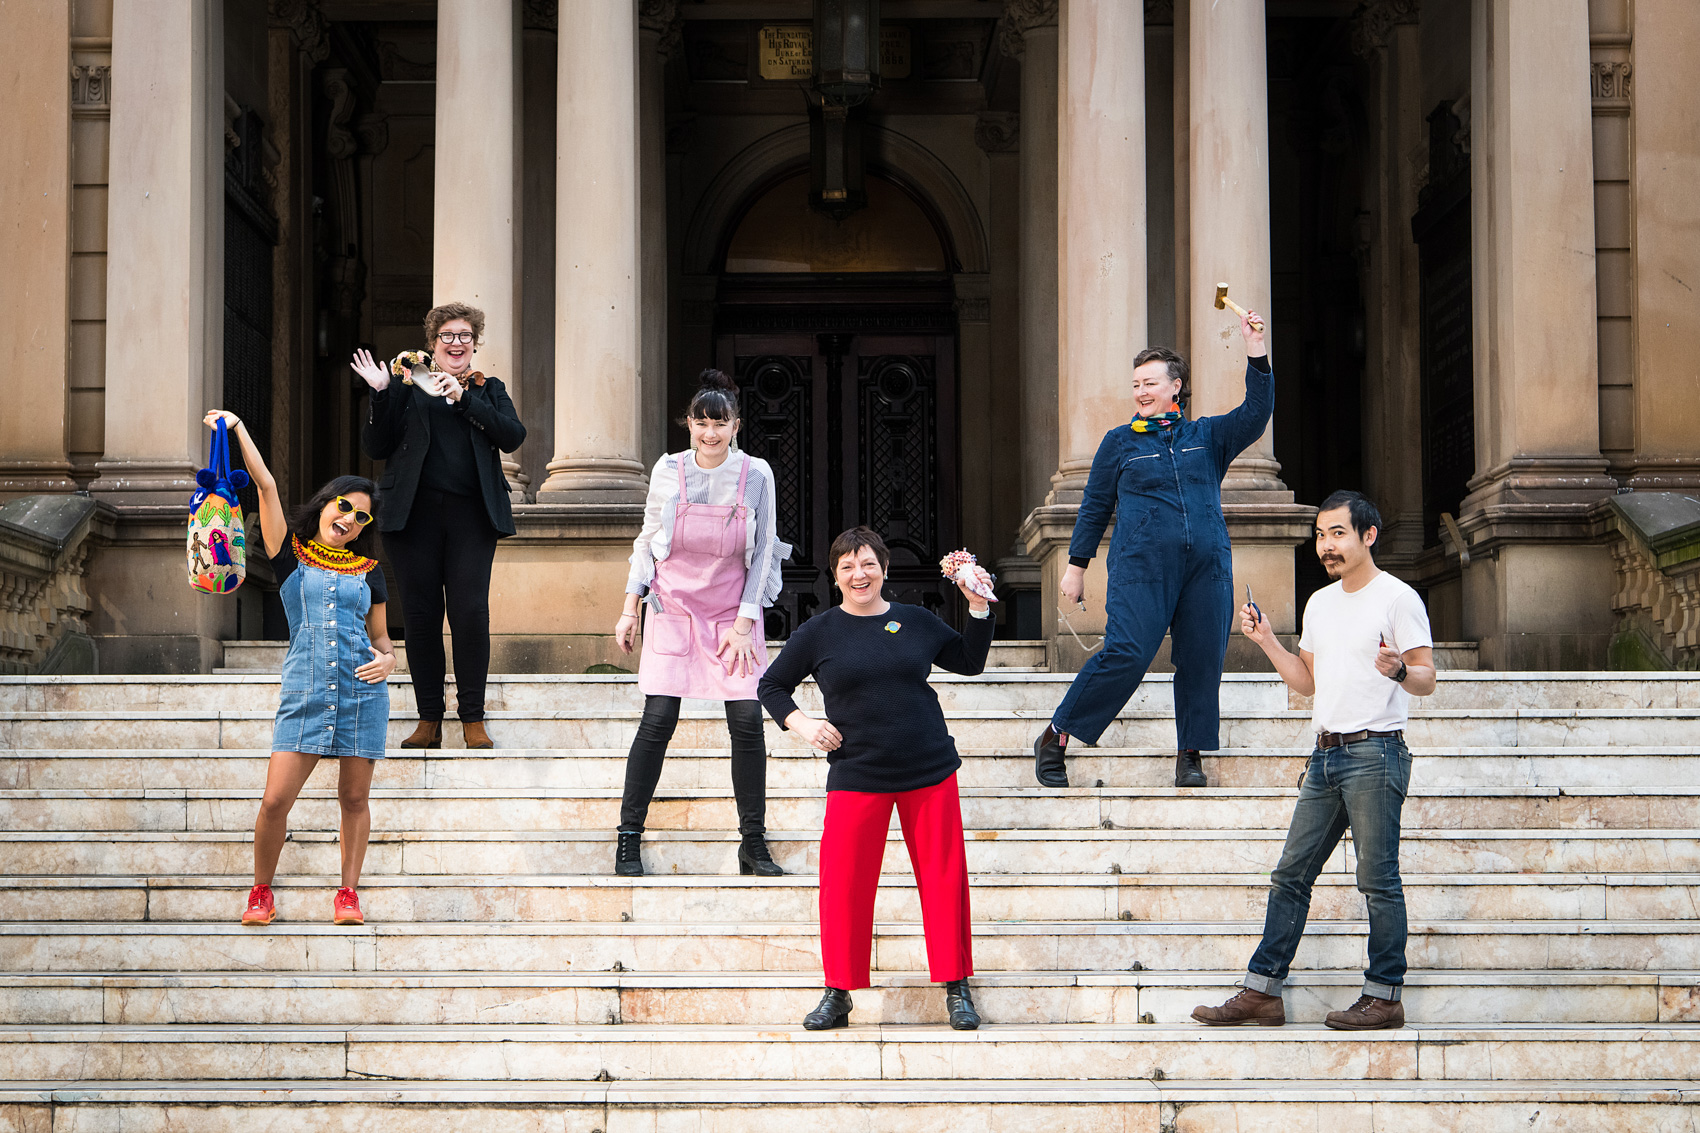 Sydney Craft Week participants at Sydney Town Hall: Marie from The Sydney Connection, Ana from Mami Watta Collections, Erin from The Bench, Nadine from MakerSpace and Co, Huon from Gaffa Creative Precinct and Karin from University of Sydney.  Photo: Rhiannon Hopley.